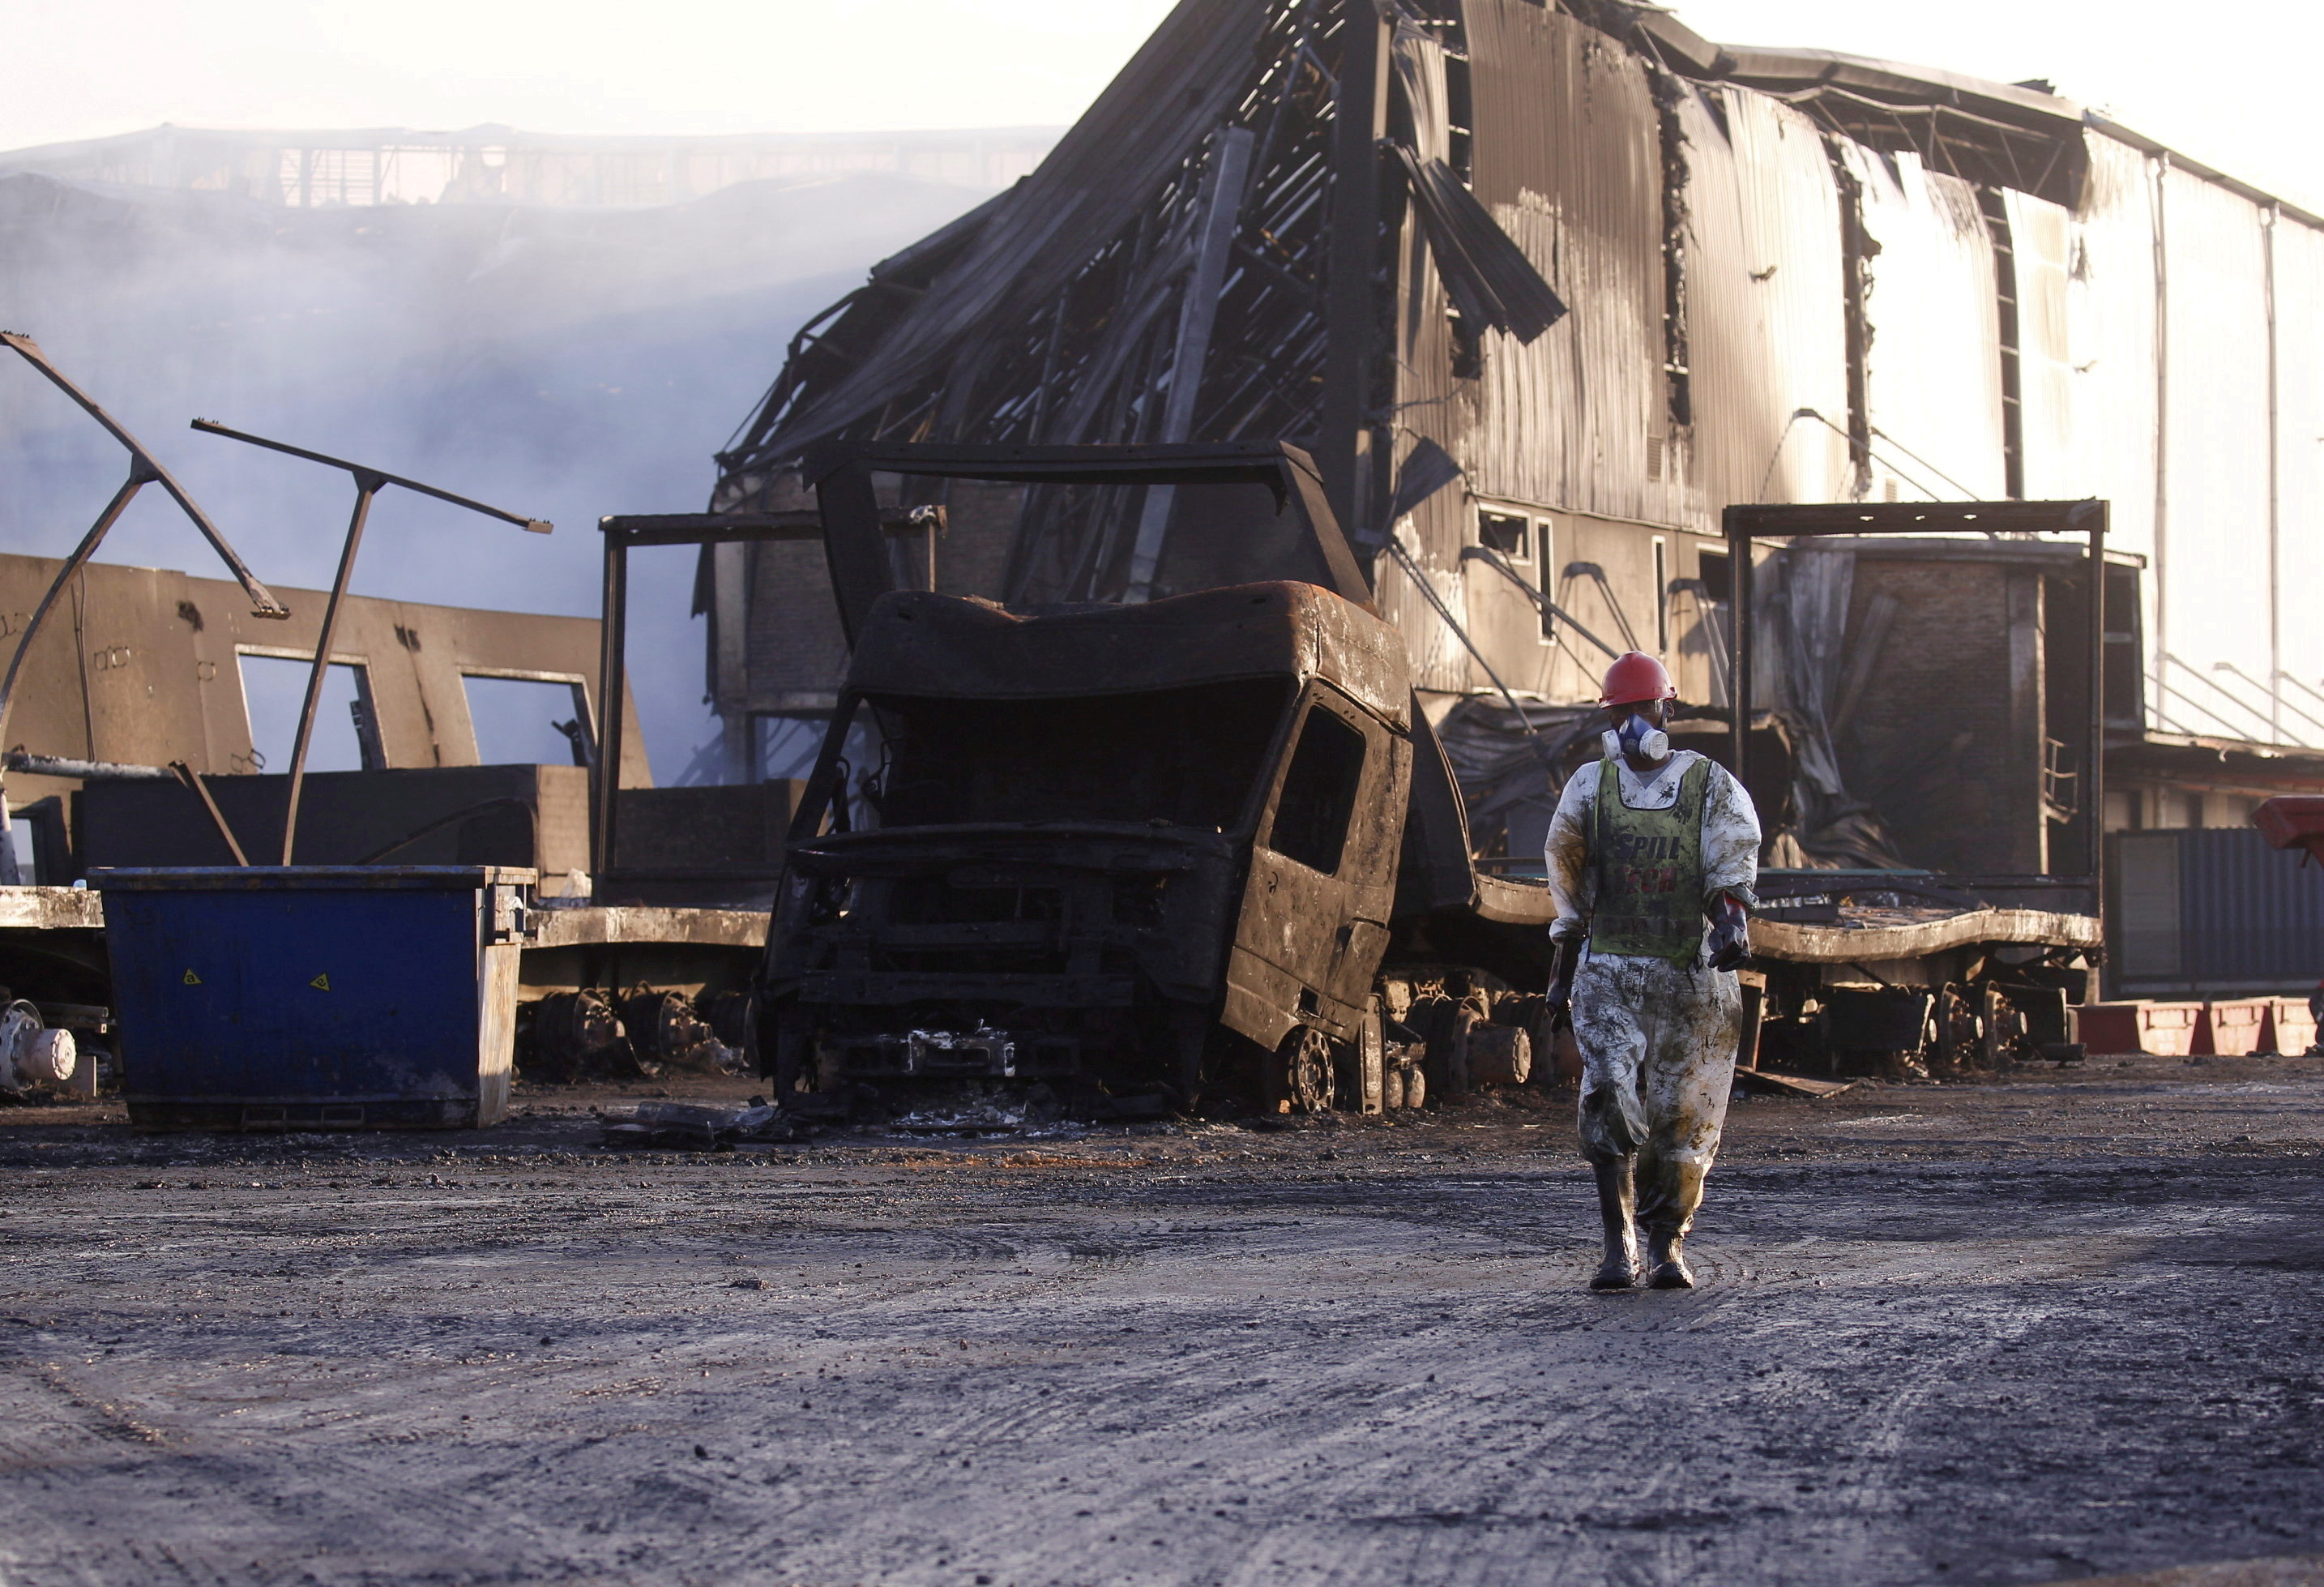 A member of a hazardous waste cleanup crew walks to clean up a warehouse which was burned during days of looting following the imprisonment of former South African President Jacob Zuma, in Durban, South Africa, July 17, 2021. REUTERS/Rogan Ward/File Photo